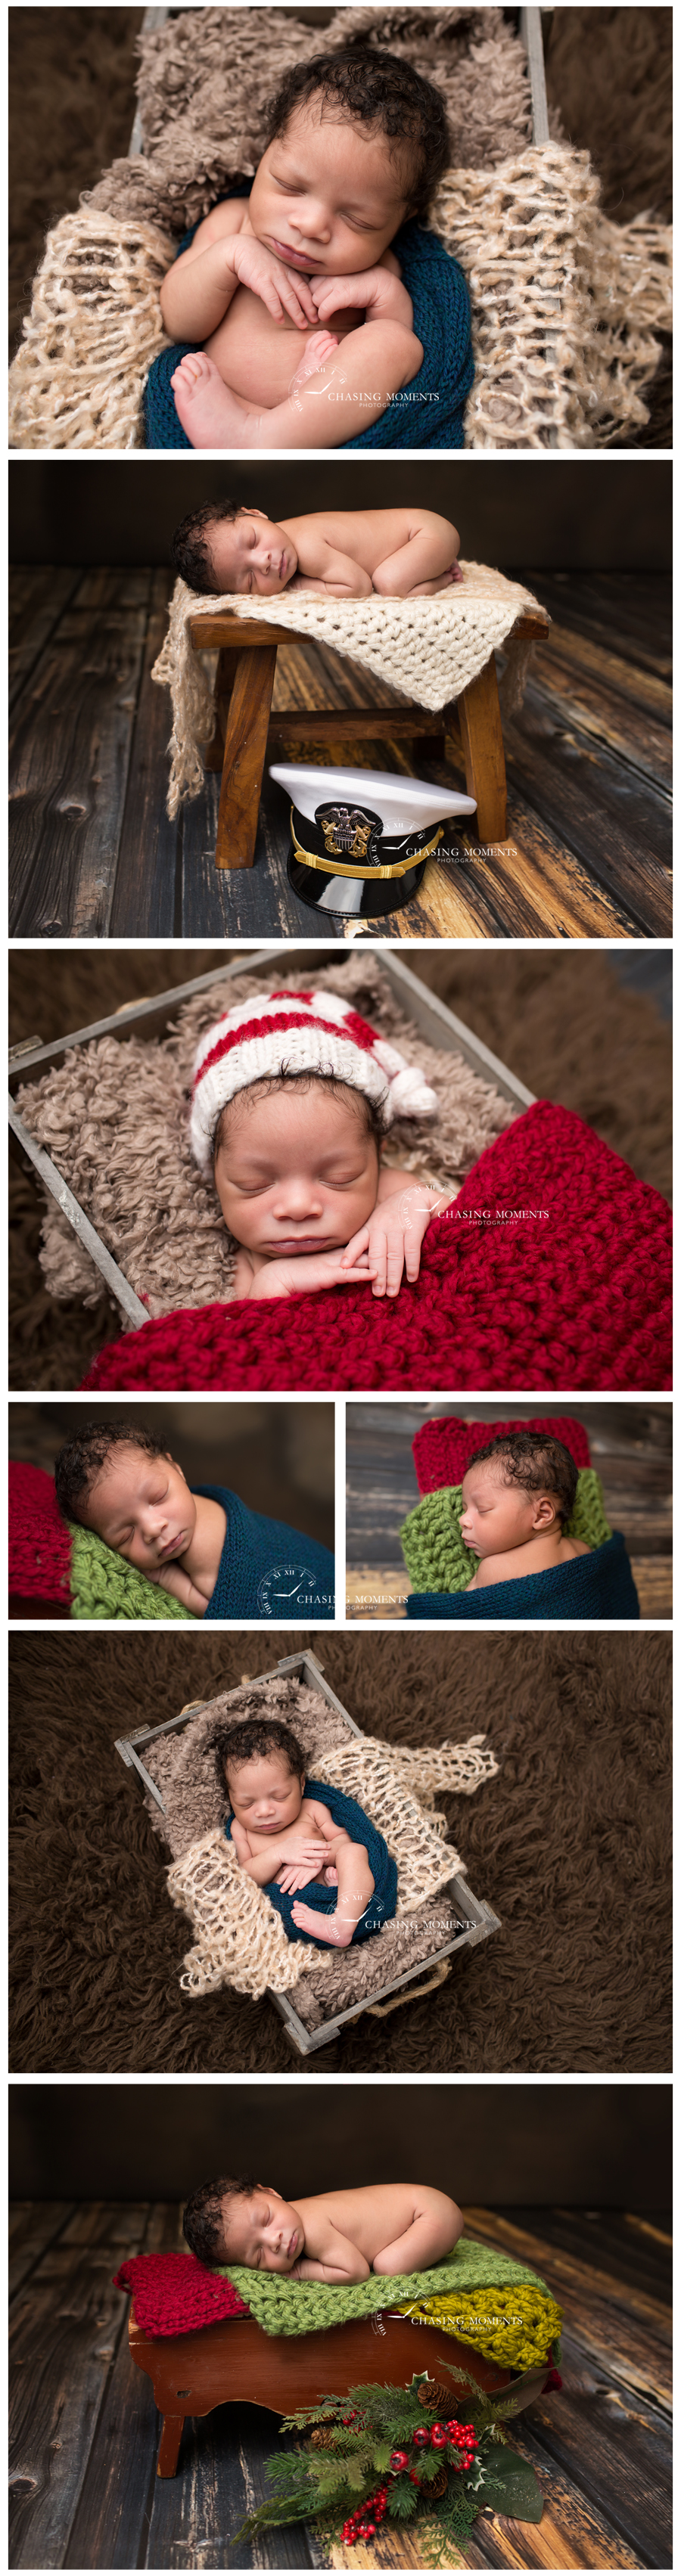 alexandria va newborn photographer_02